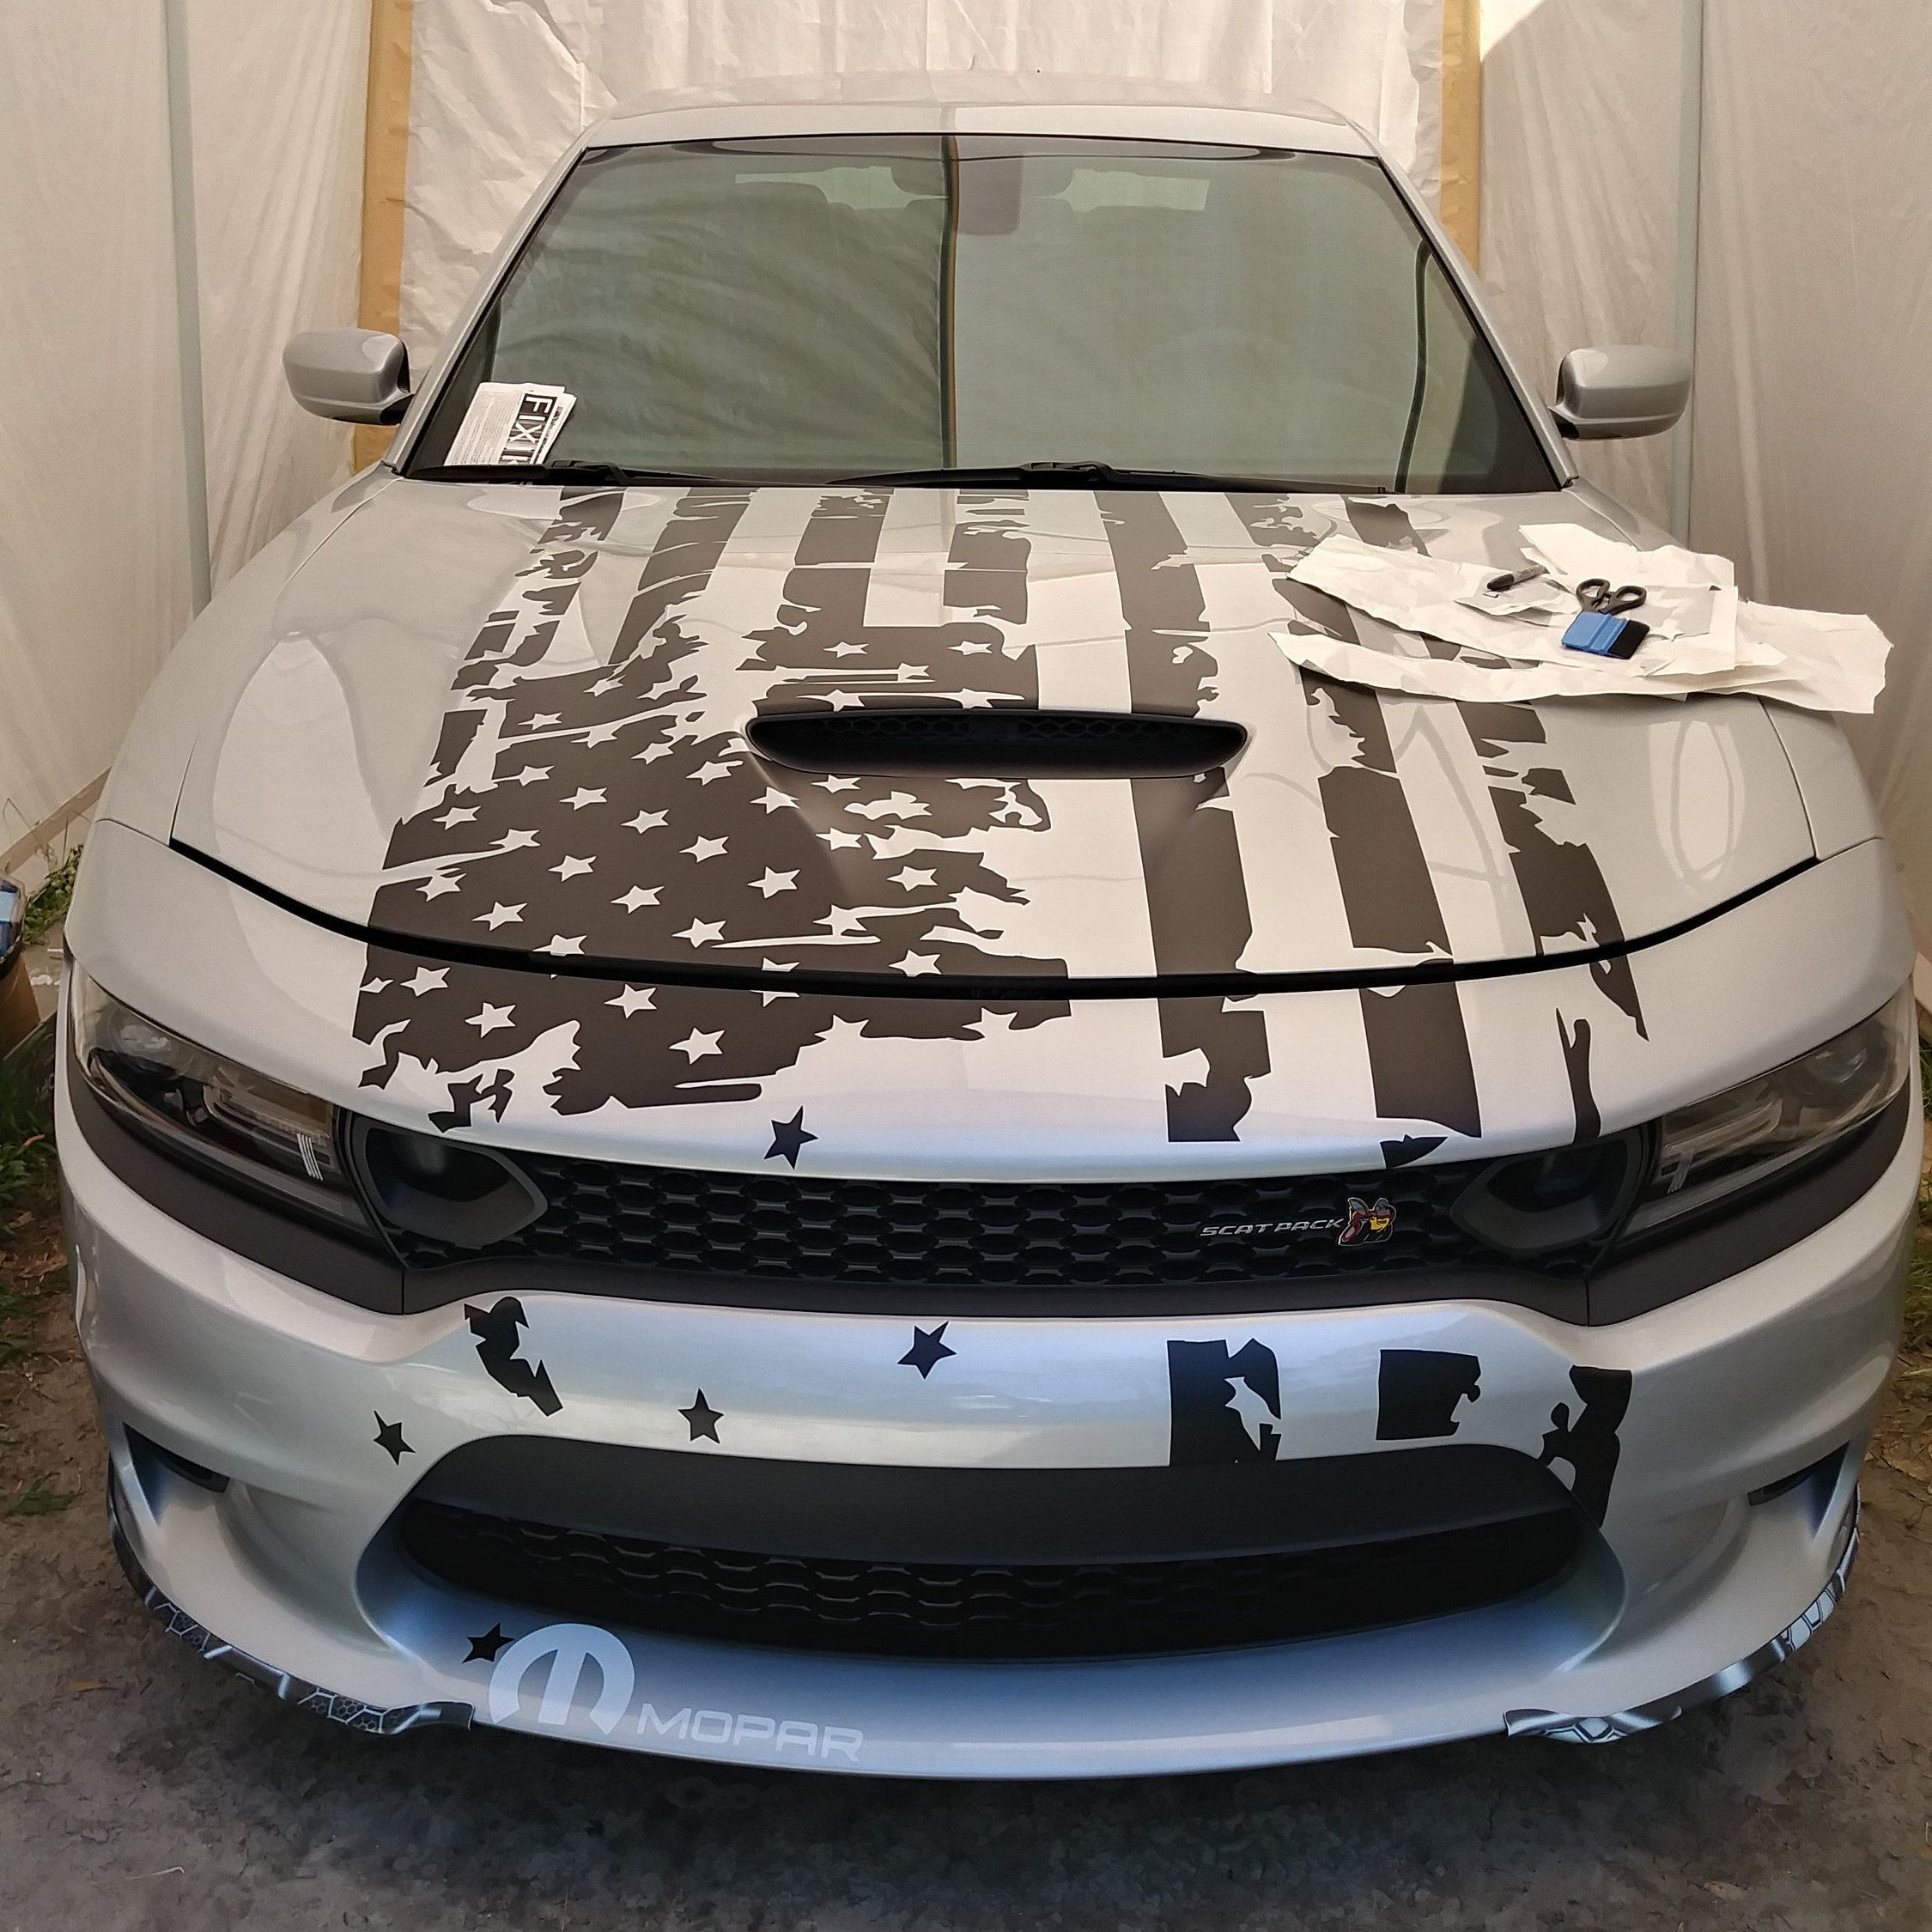 Large american flag vinyl decal sticker for hood or roof